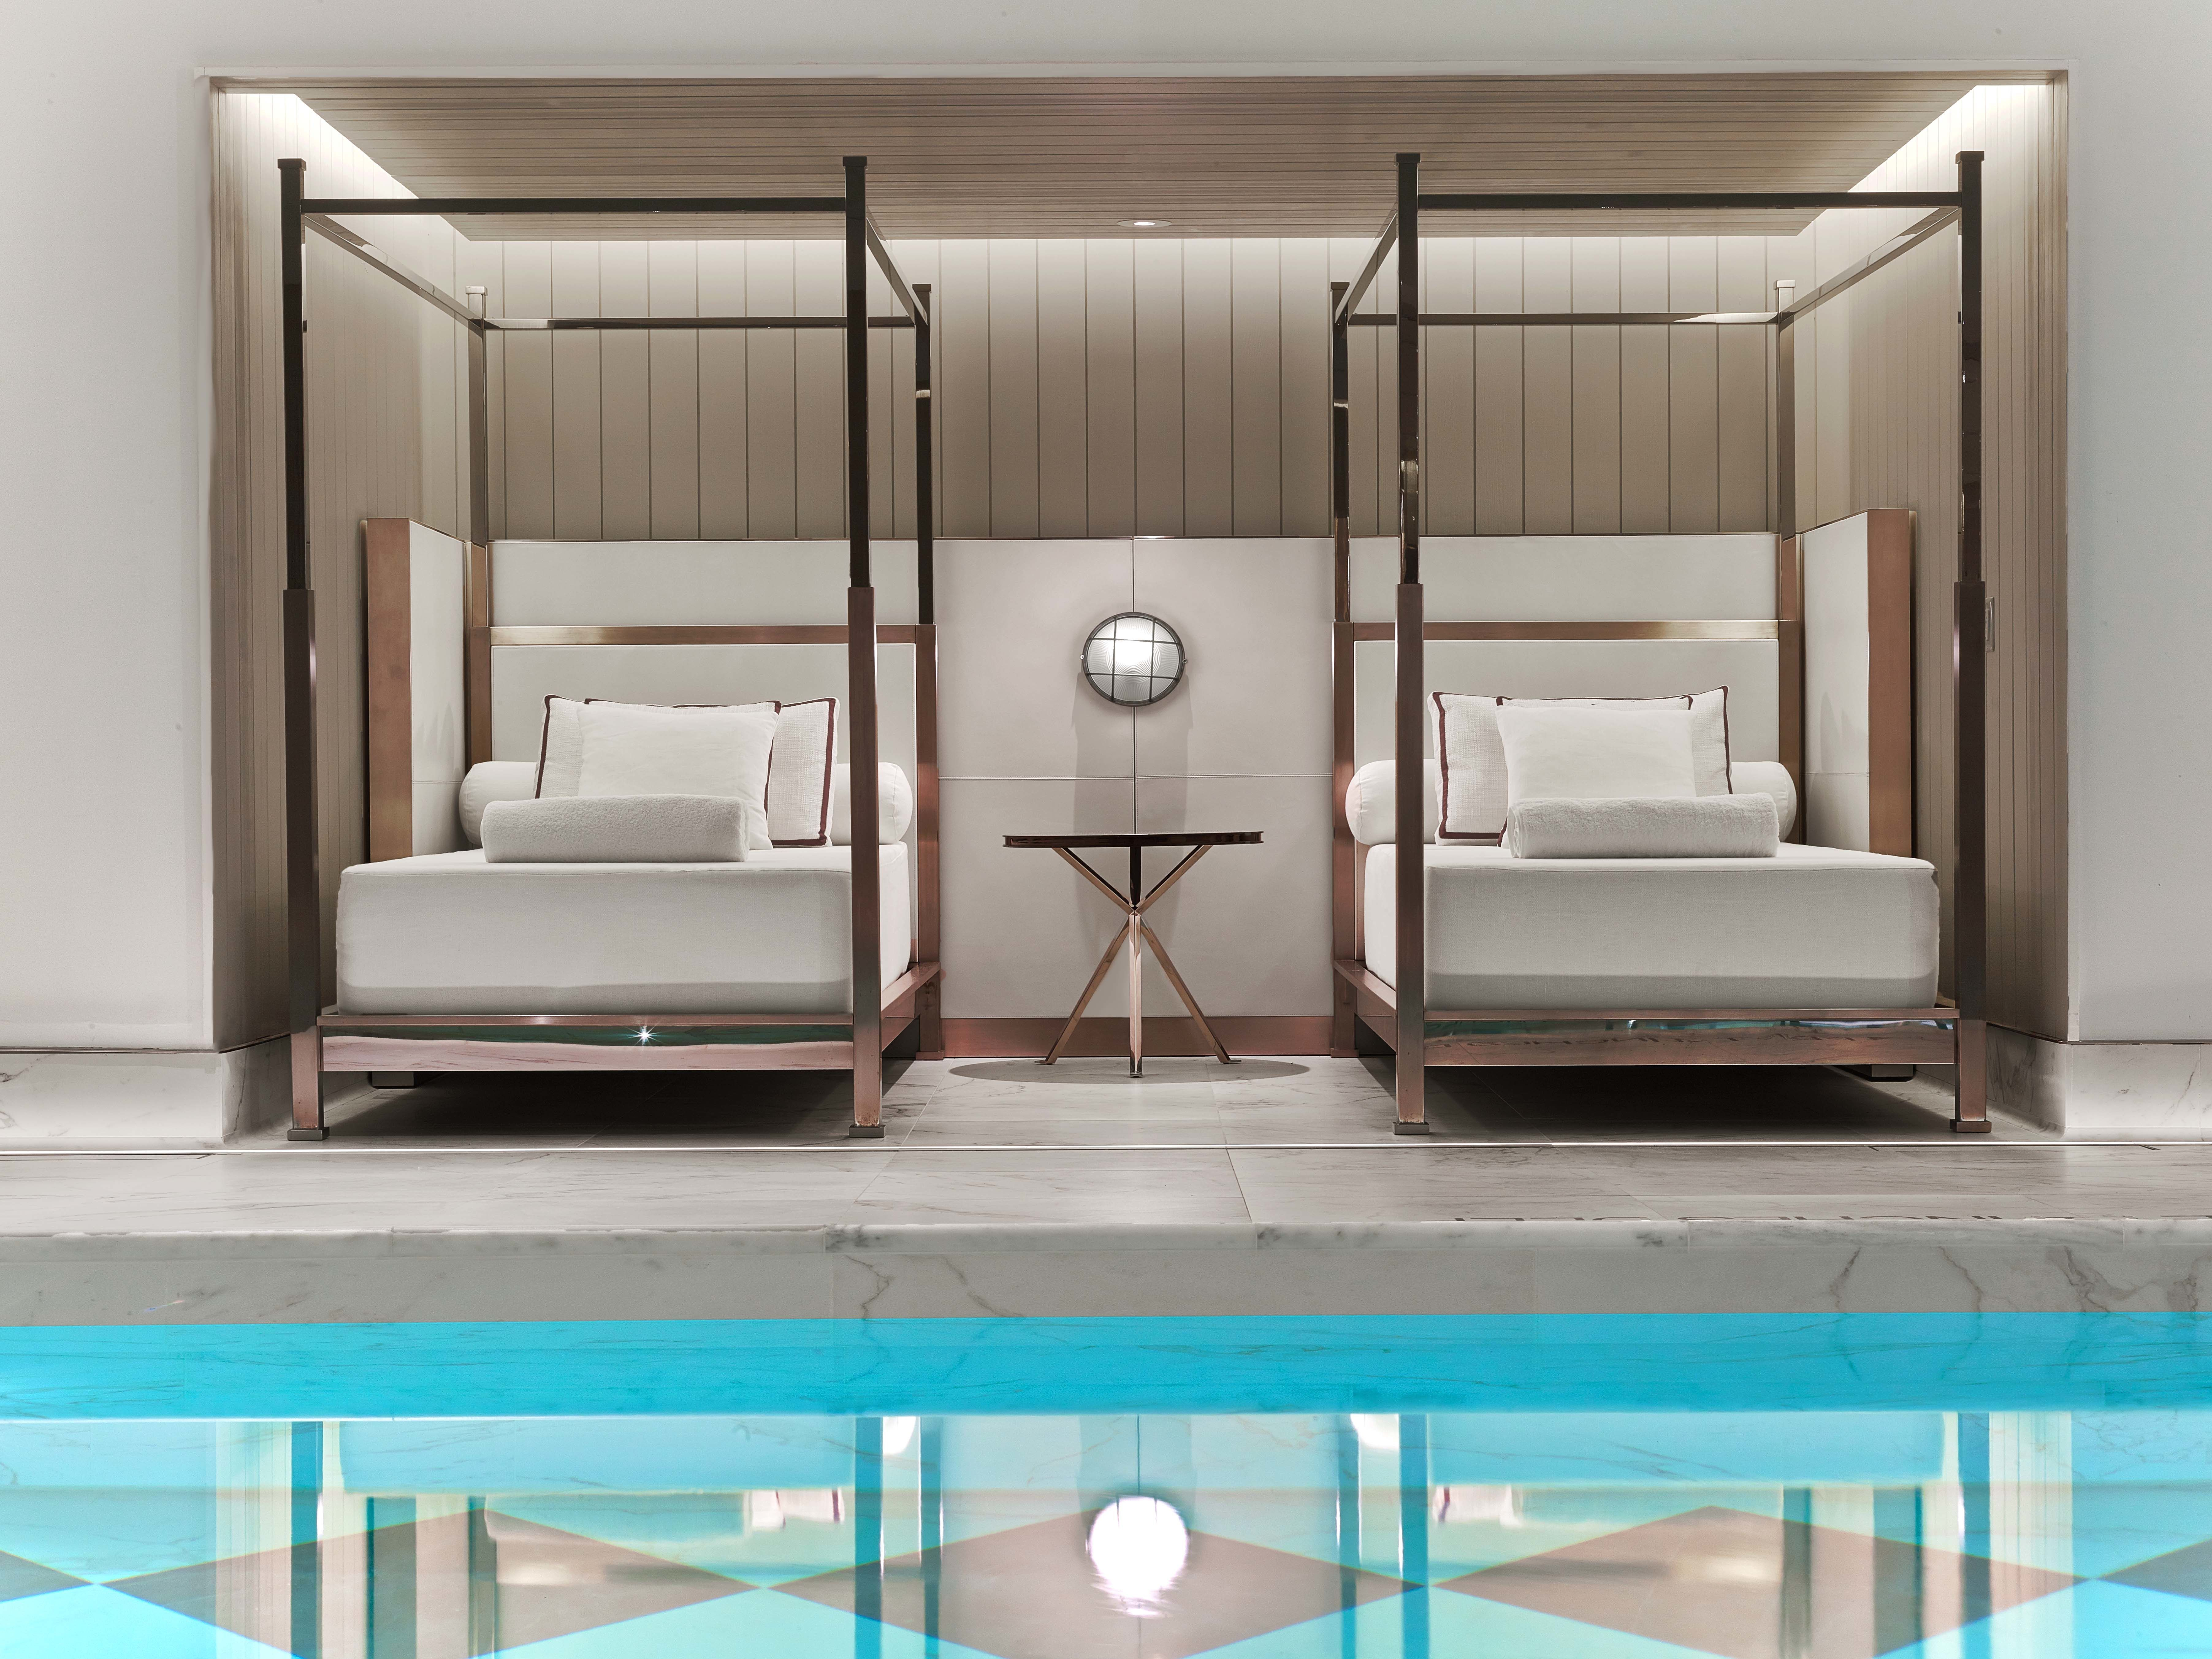 10 New High-Design Spas for the Ultimate Indulgence | Spas ...